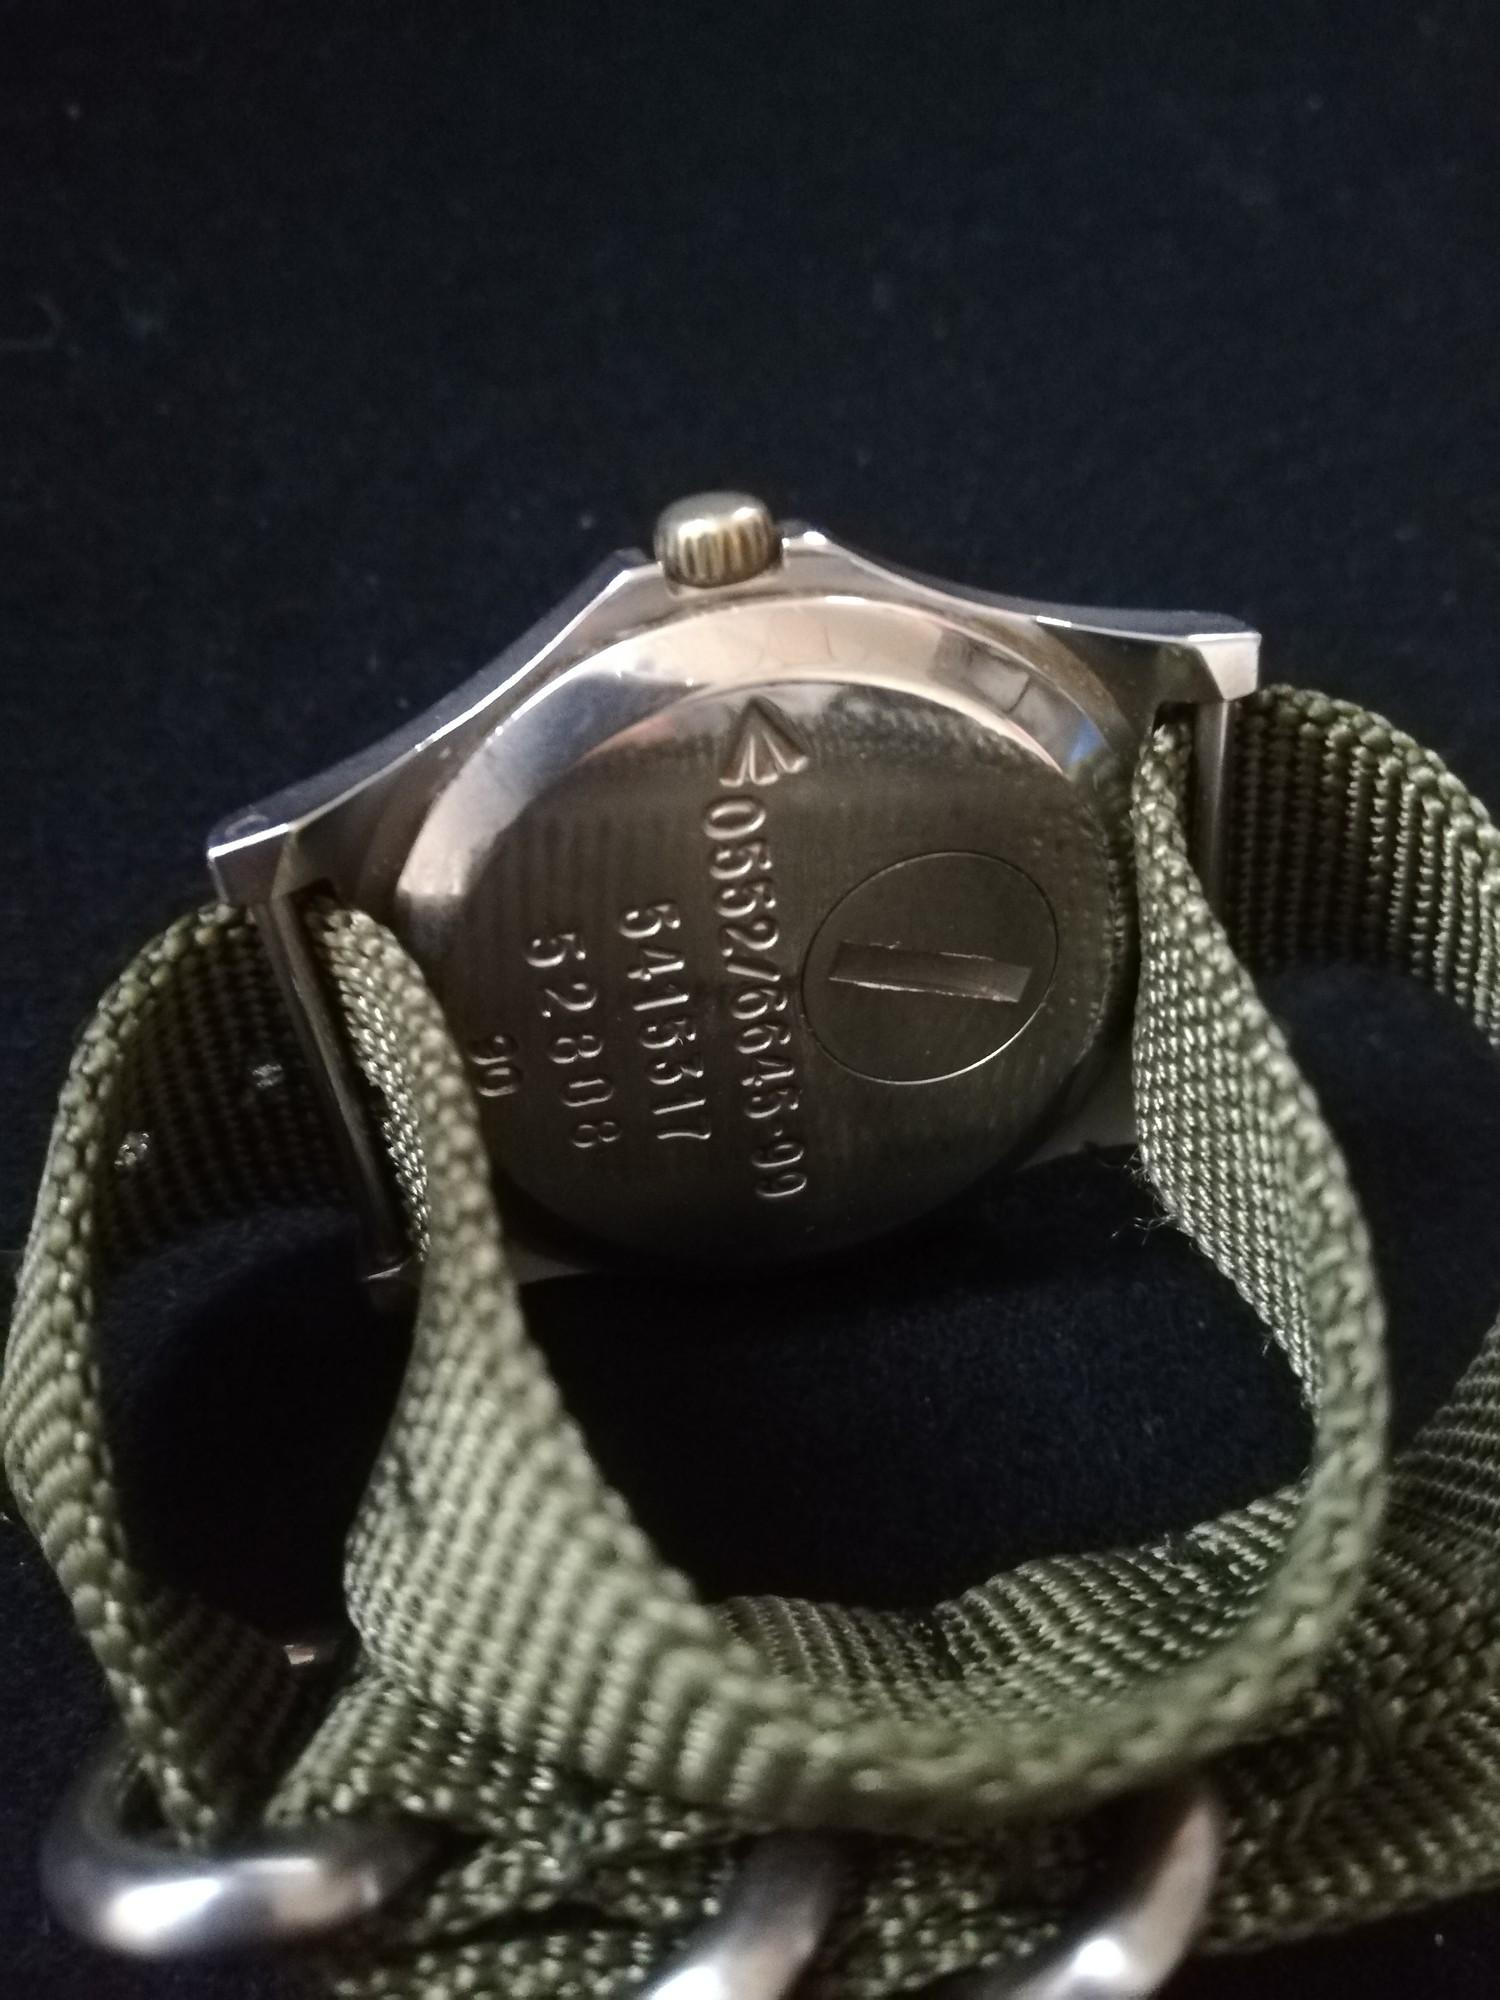 CWC (Cabot Watch Company) military quartz driven watch dated 99 to reverse - Image 2 of 2